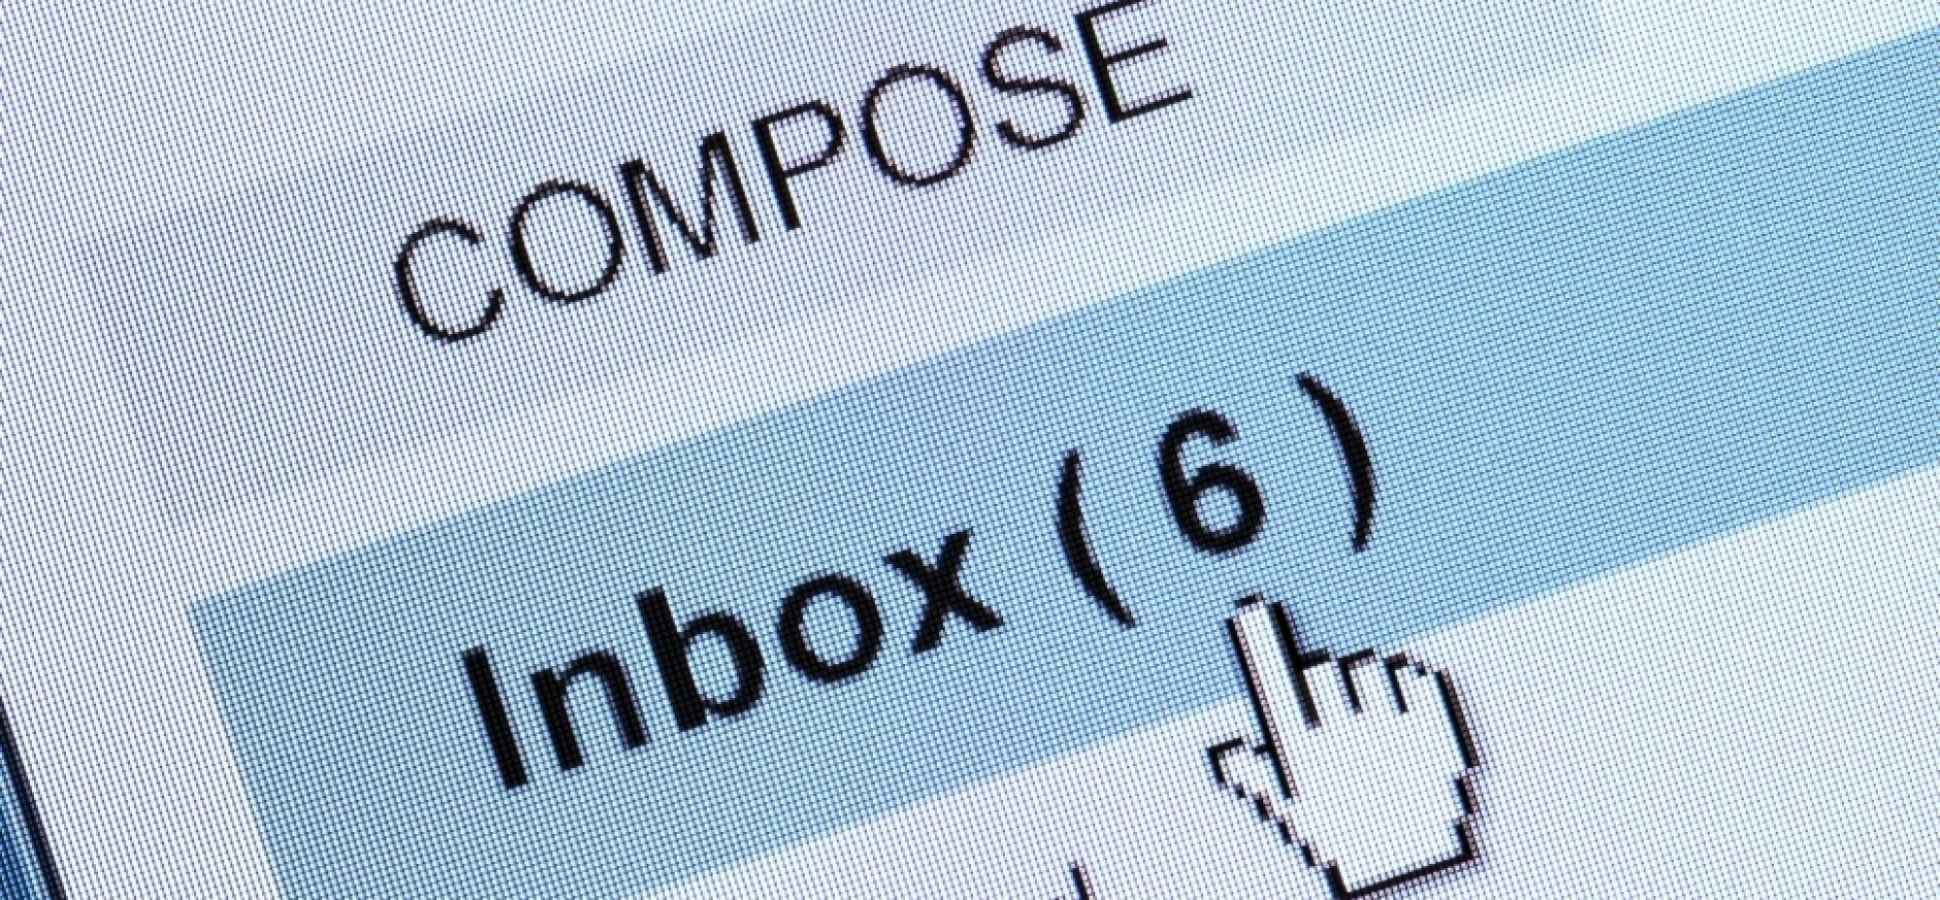 5 Email Blunders to Avoid